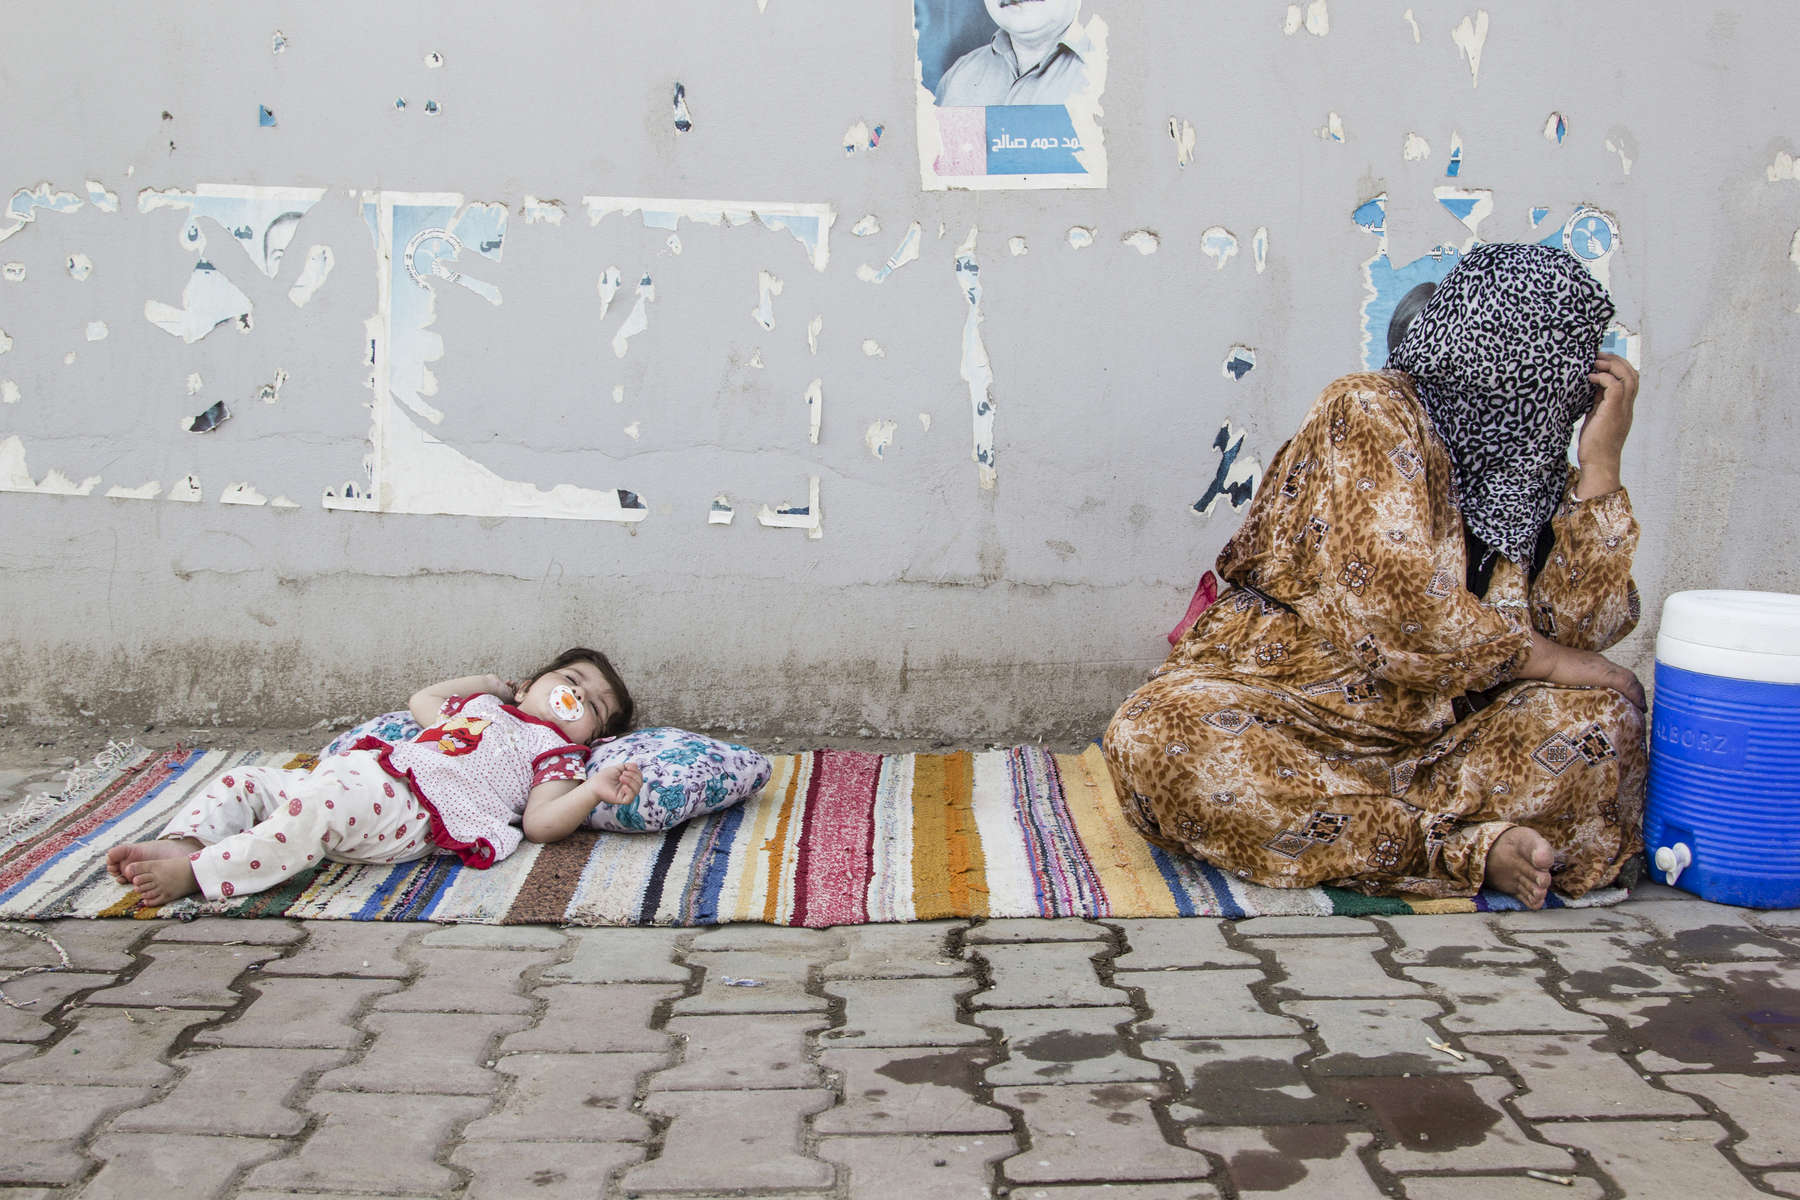 24/07/2014. Kirkuk, Iraq. An Iraqi Arab refugee from Mosul and her daughter are seen on the streets of Kirkuk, Iraq.